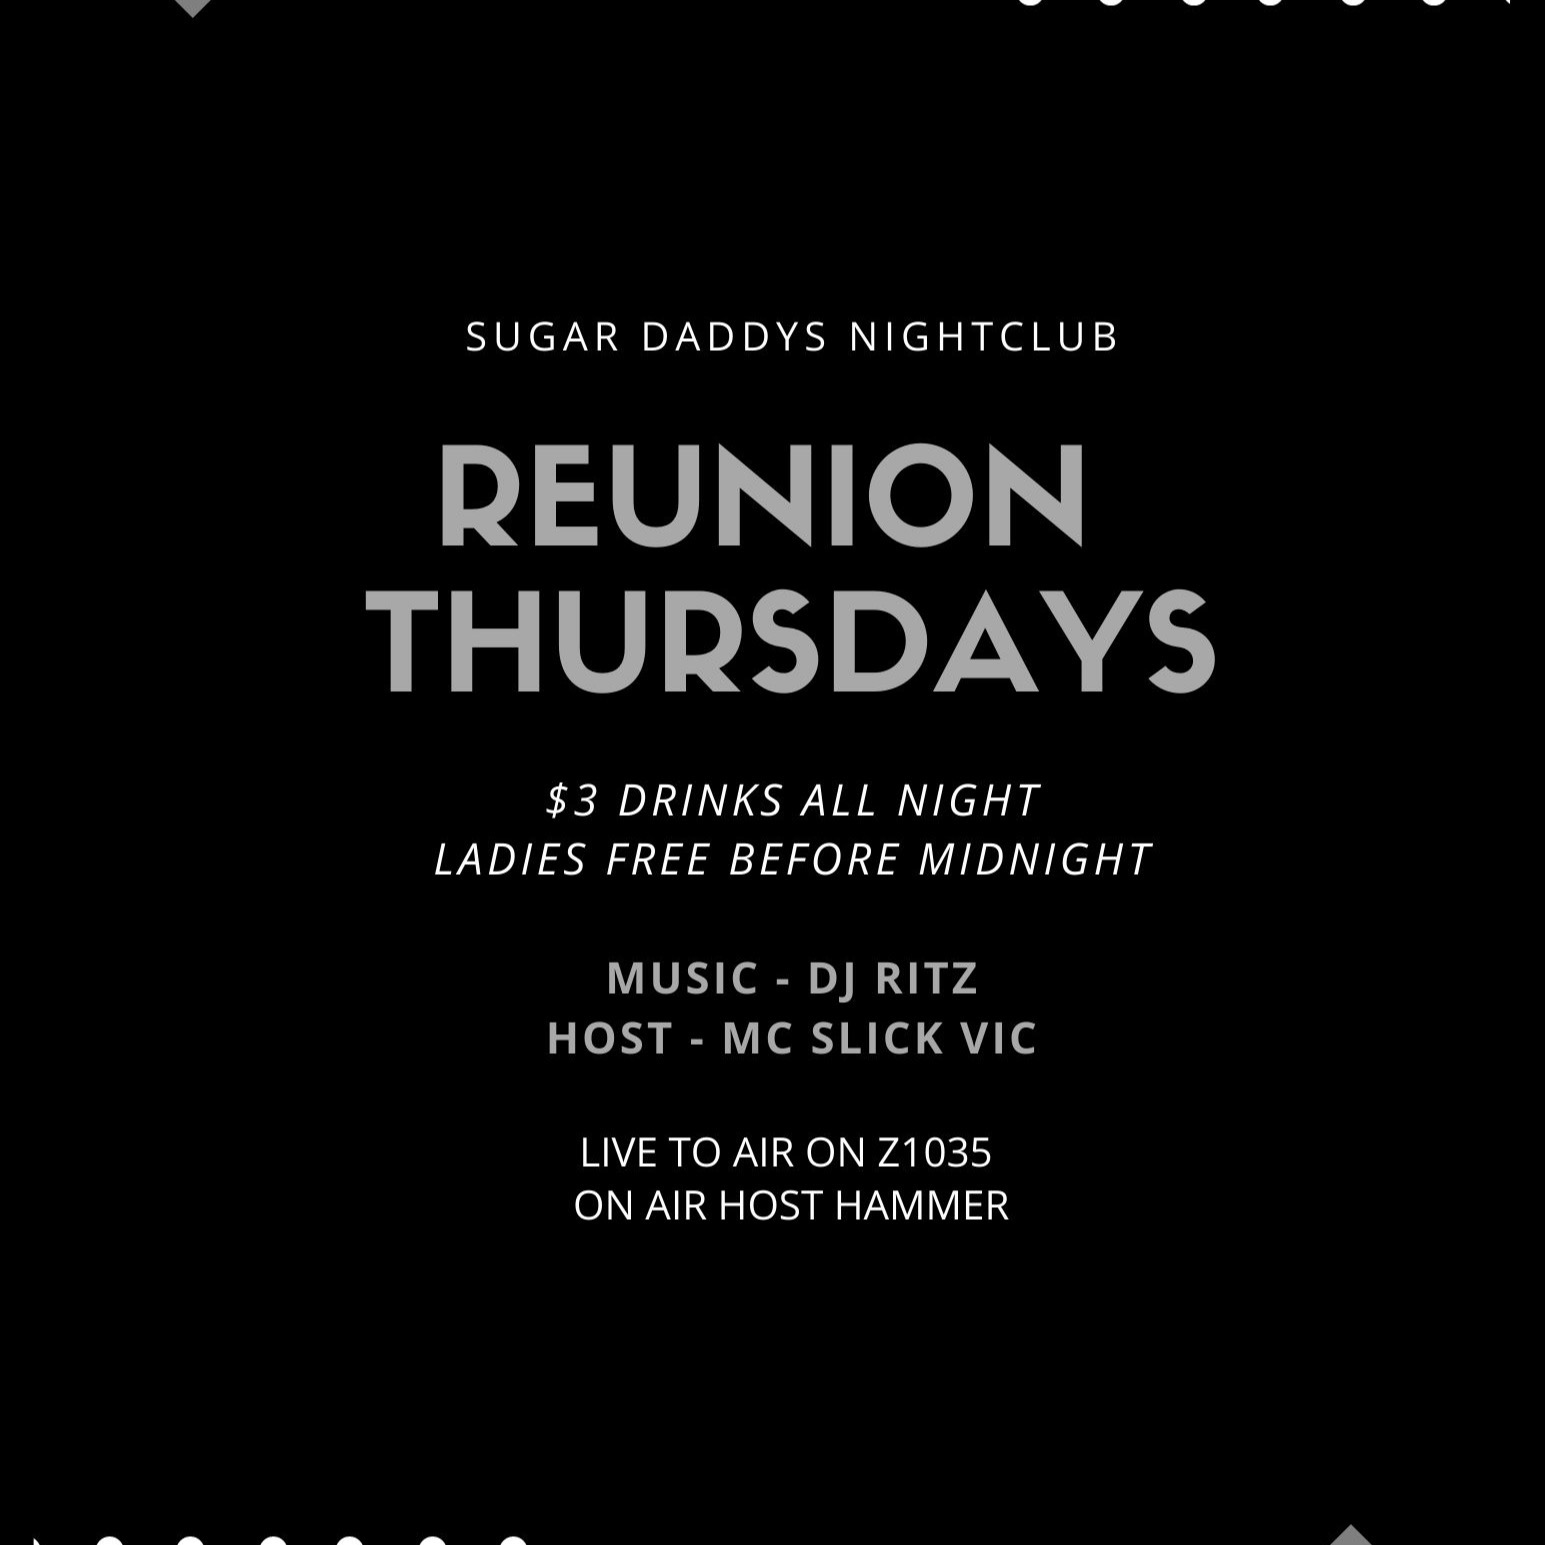 SUGAR DADDYS THURS $3 DRINKS LADIES FREE B4 MIDNIGHT LIVE Z1035 W/ DJ RITZ